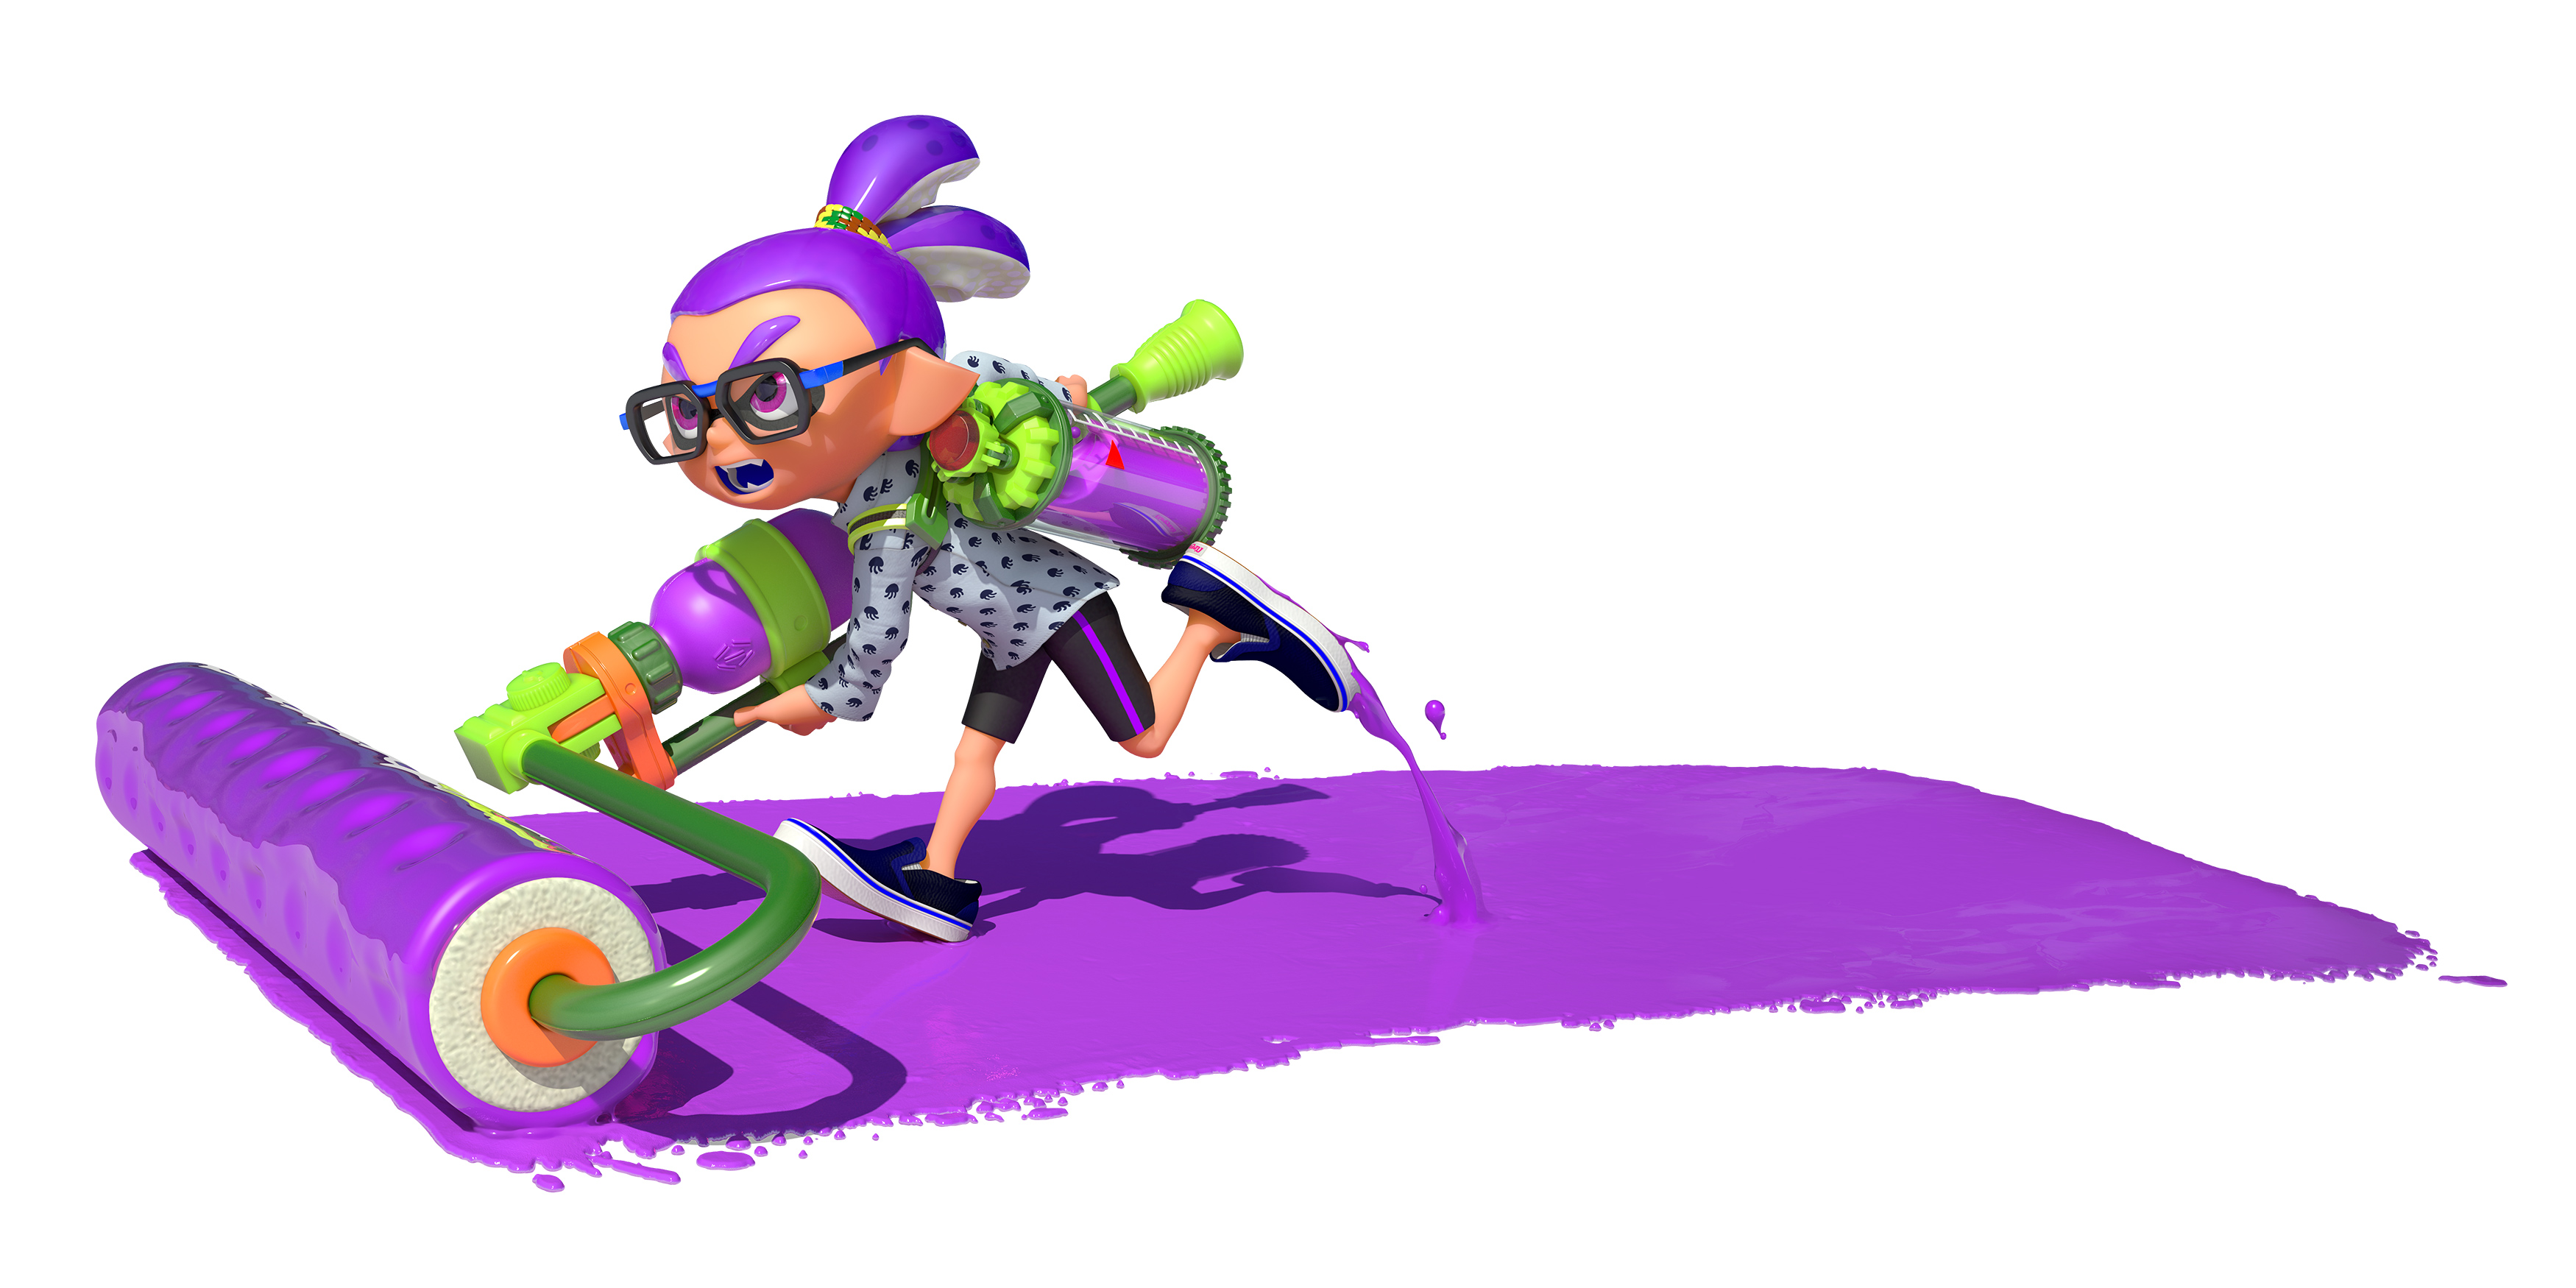 splatoon nintendo dungeons and dragons homebrew switch